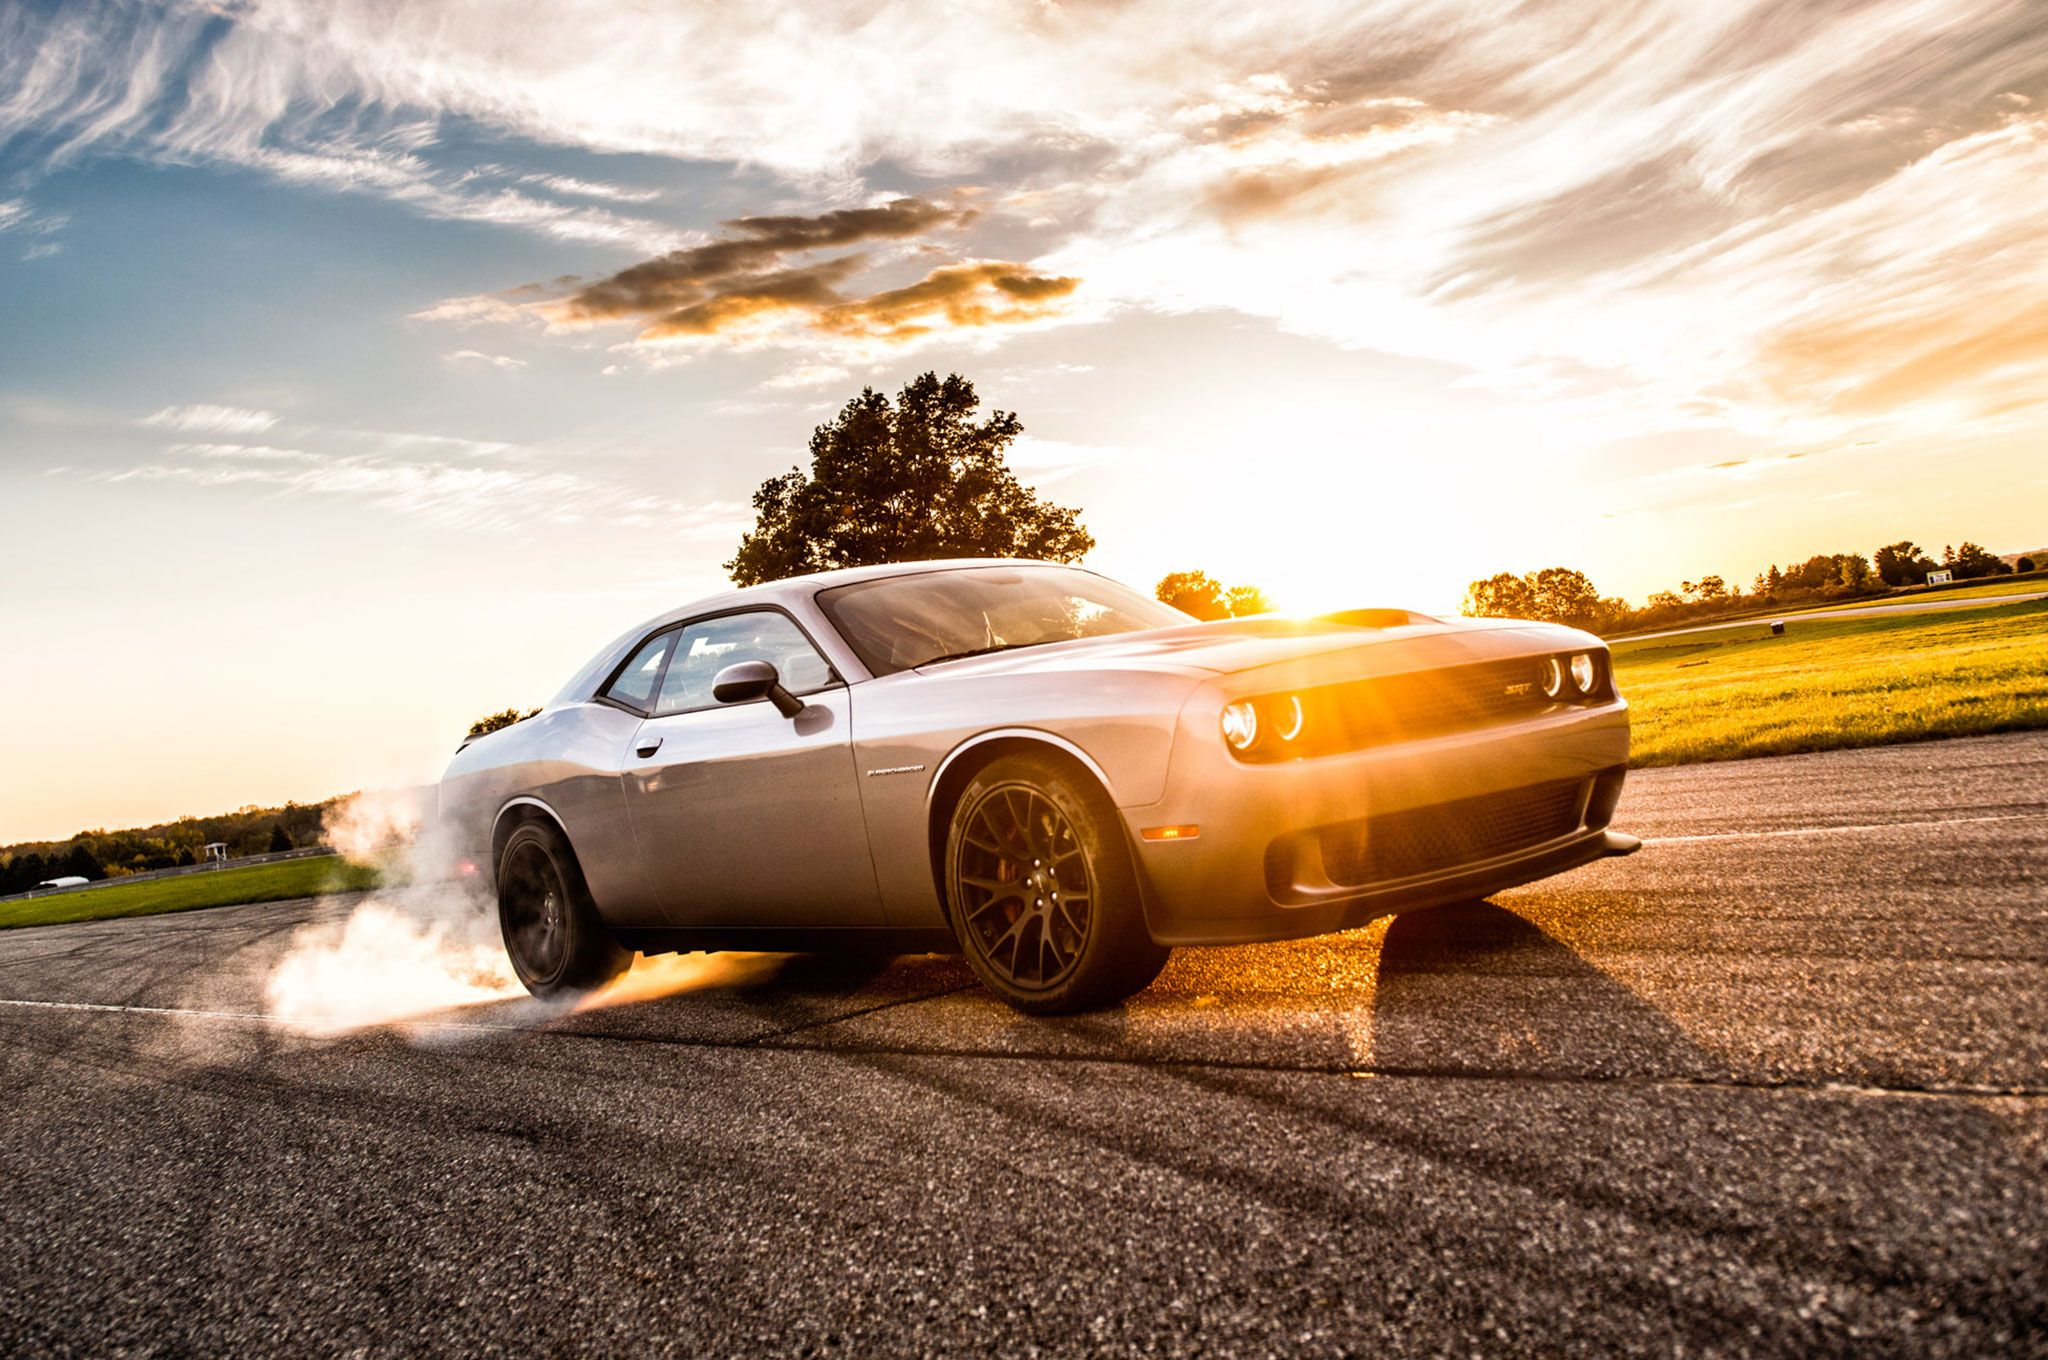 Exceptional 2015 Dodge Challenger SRT Hellcat In Billet Silver Metallic Amazing Design